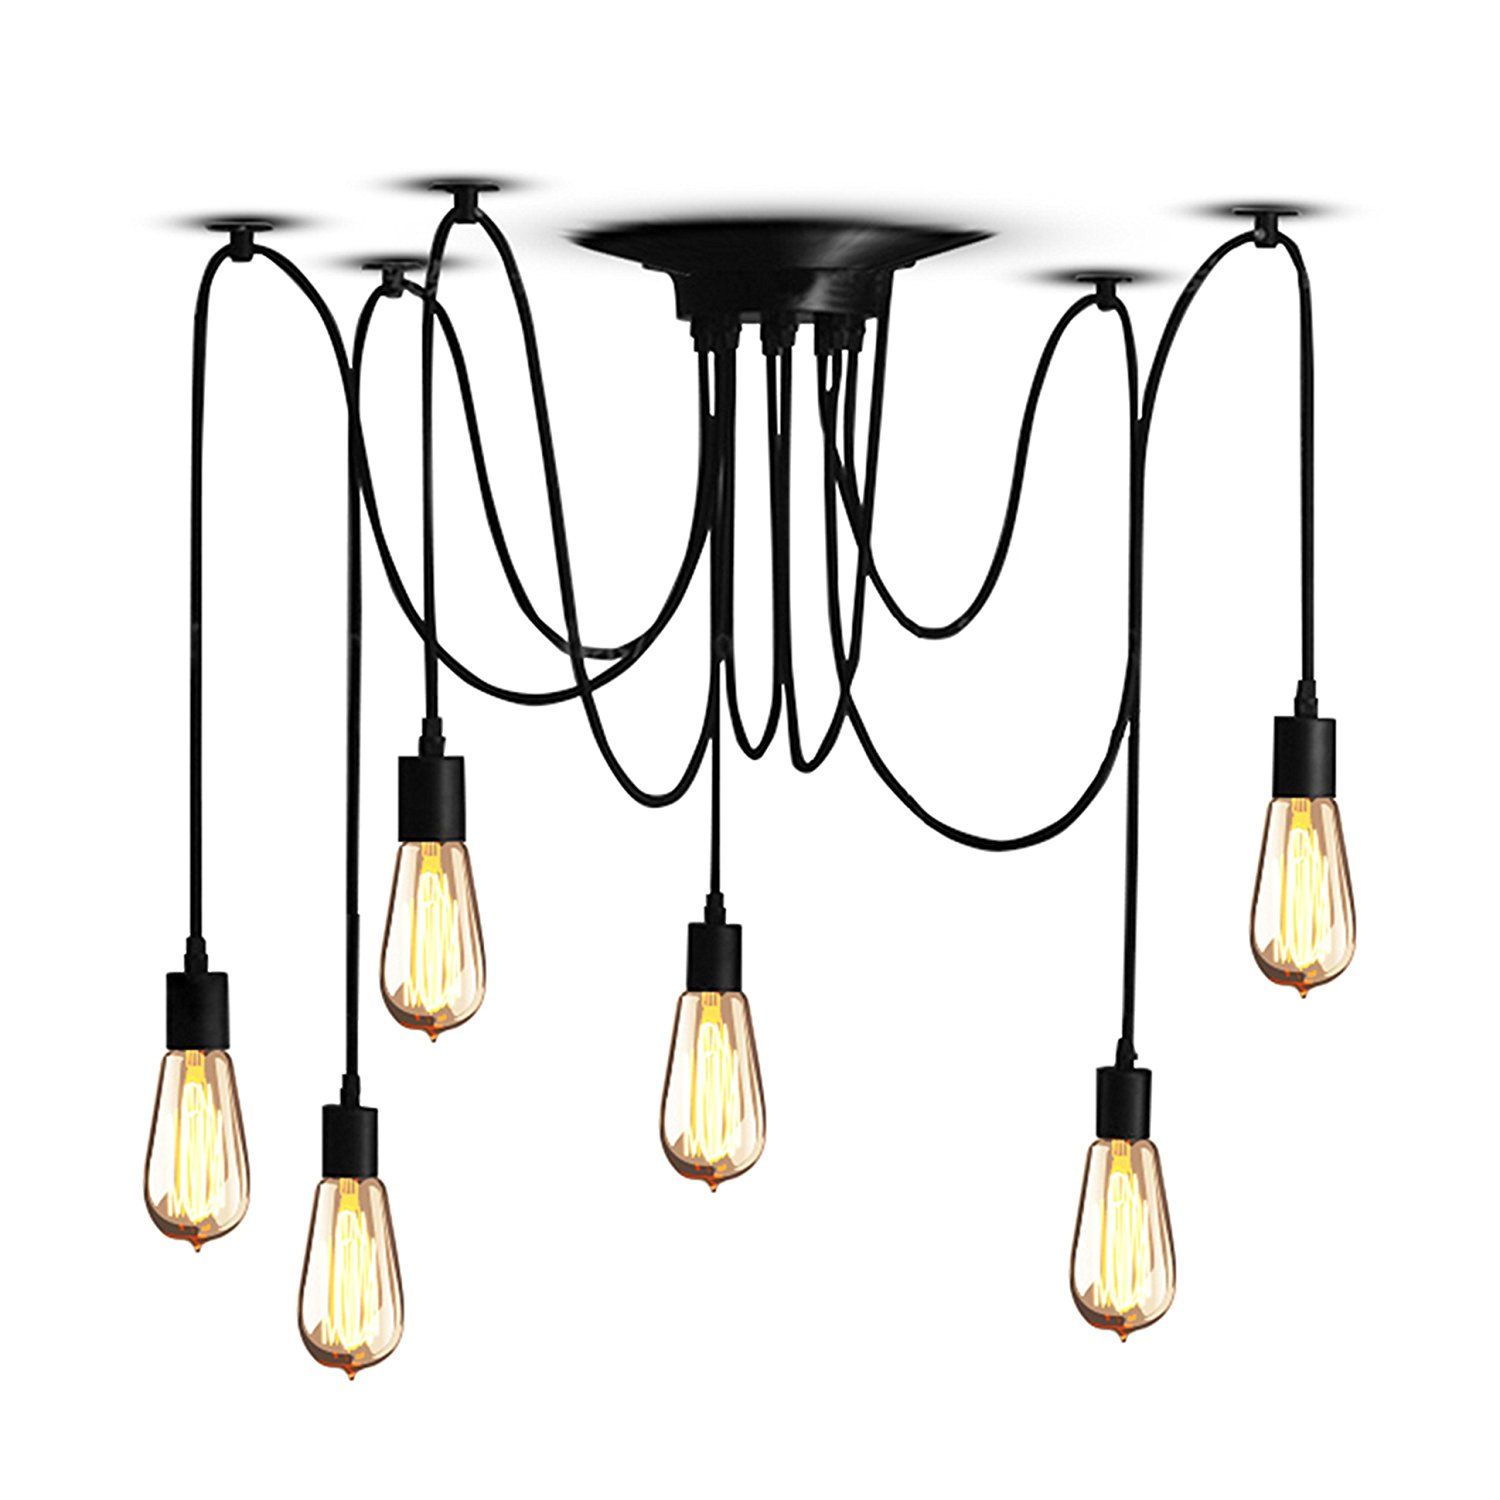 Farmhouse Light Fixtures under $200 on Amazon  Southern Made